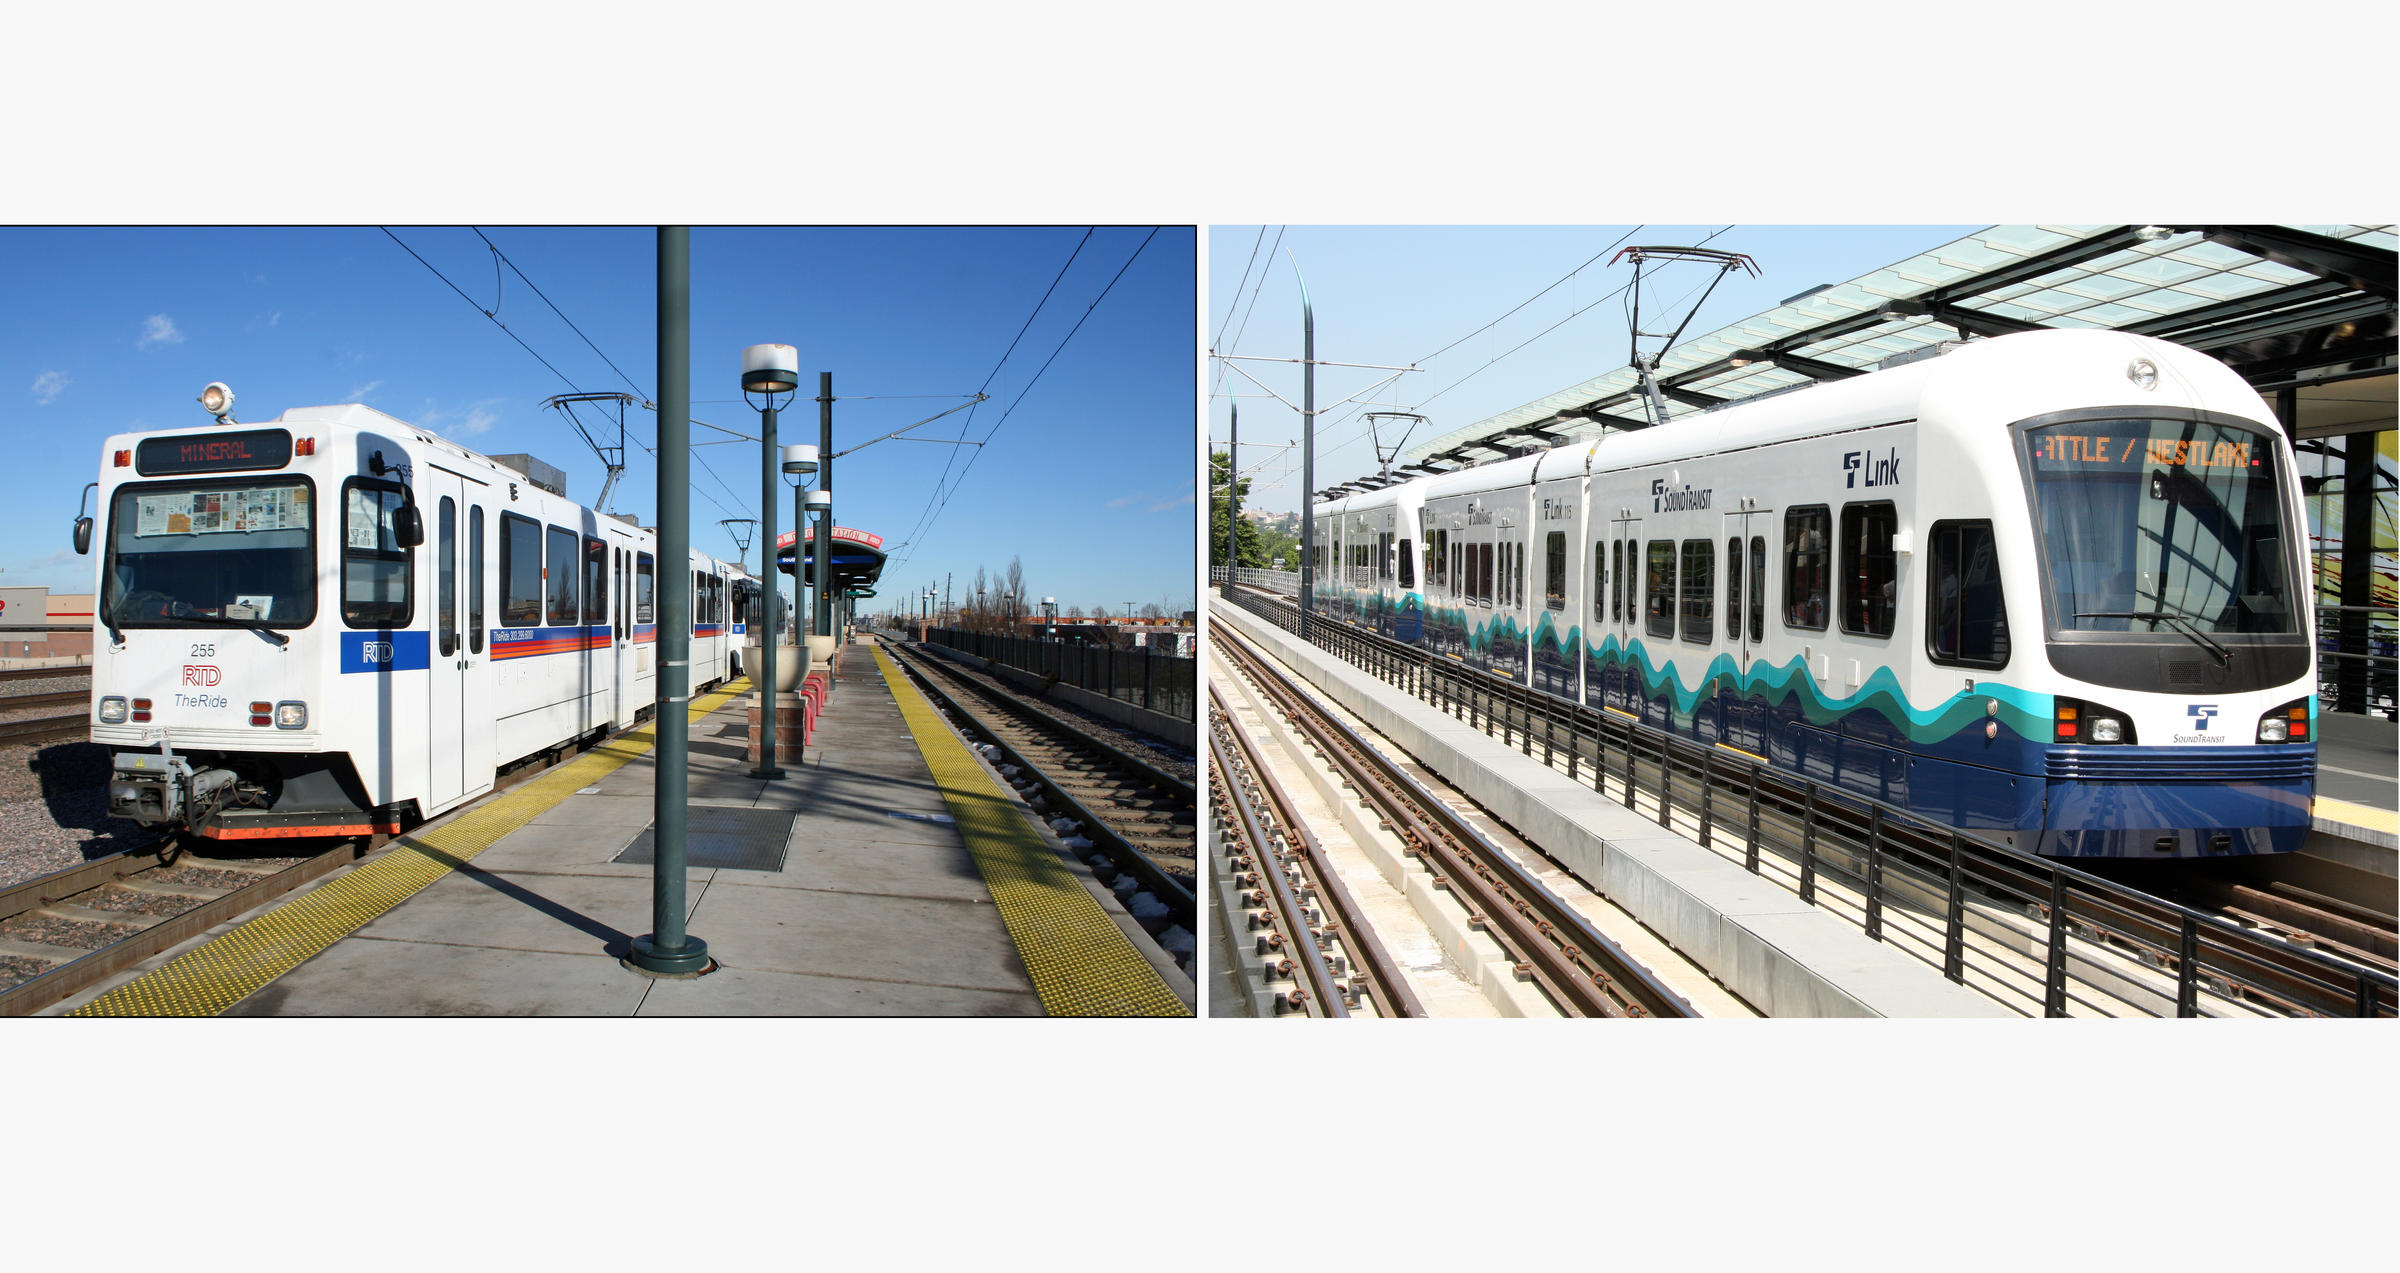 Growth In Seattle And Denver Spurs Need For Transit